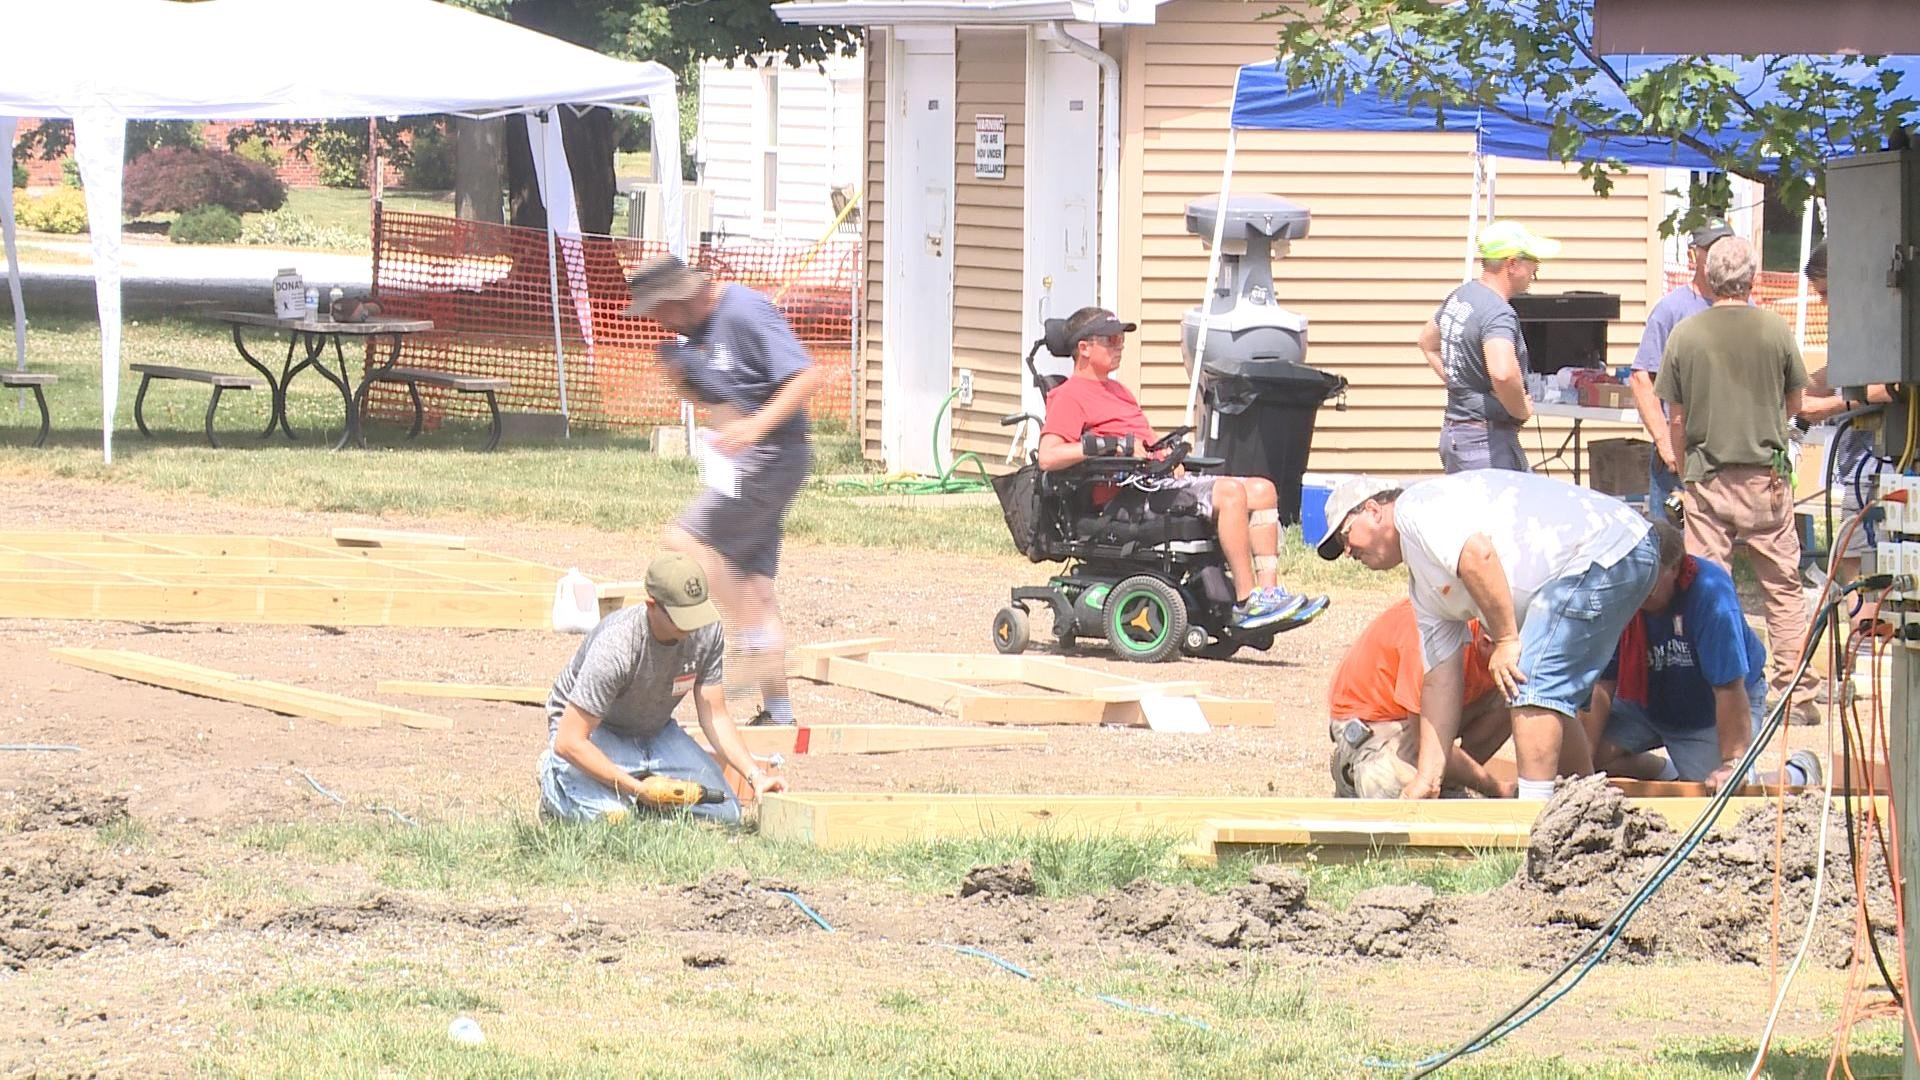 Volunteers work to build the new Wow Park in Carthage.